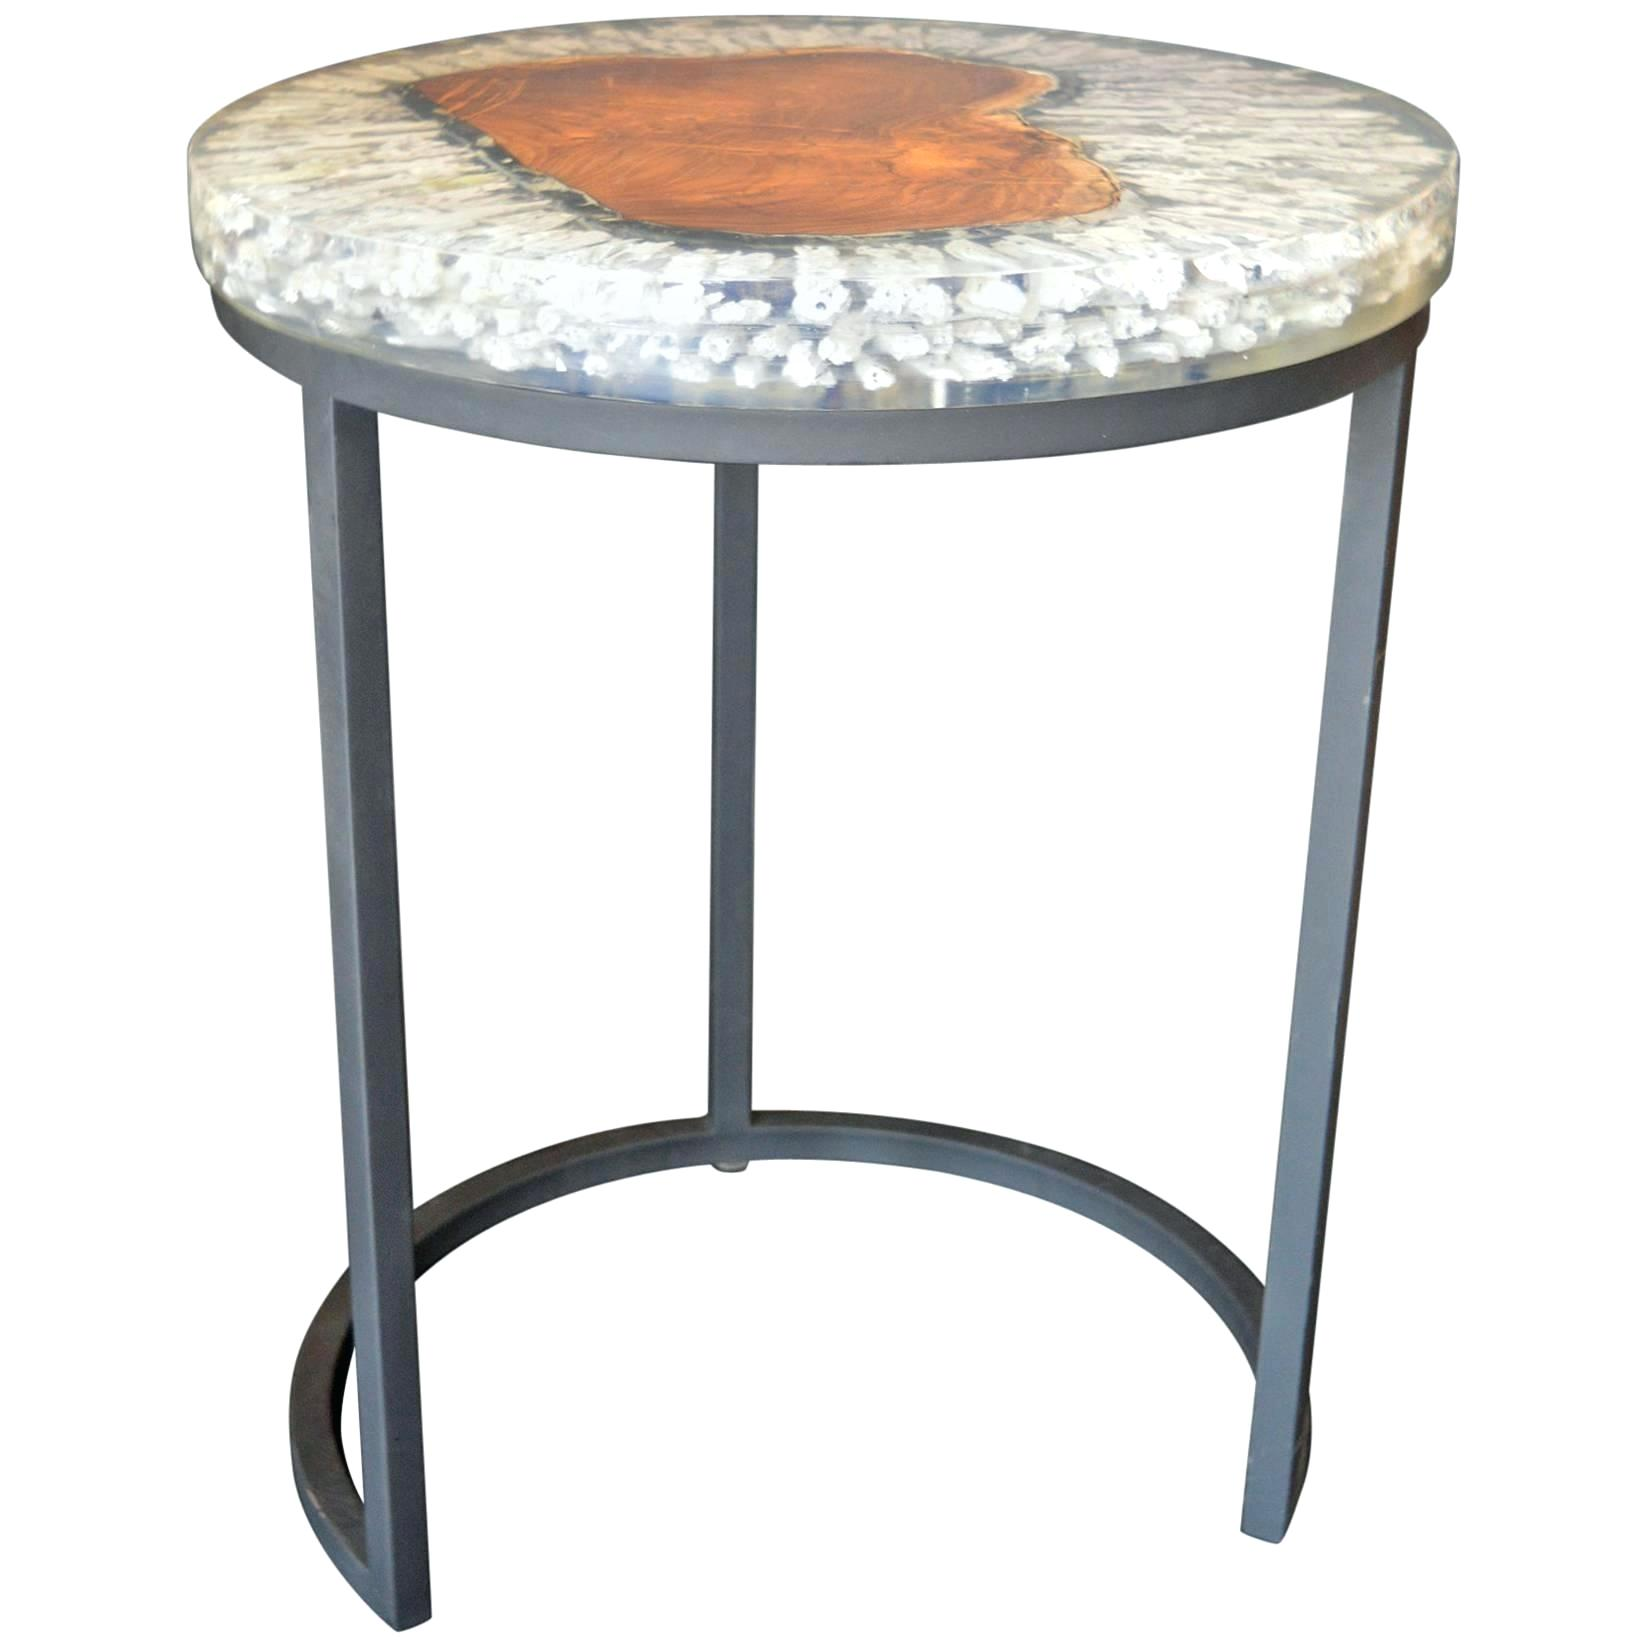 resin side table beau fort wicker outdoor geode wood and for plastic light shades reclaimed round coffee west elm armchair small square pedestal nautical night half moon console